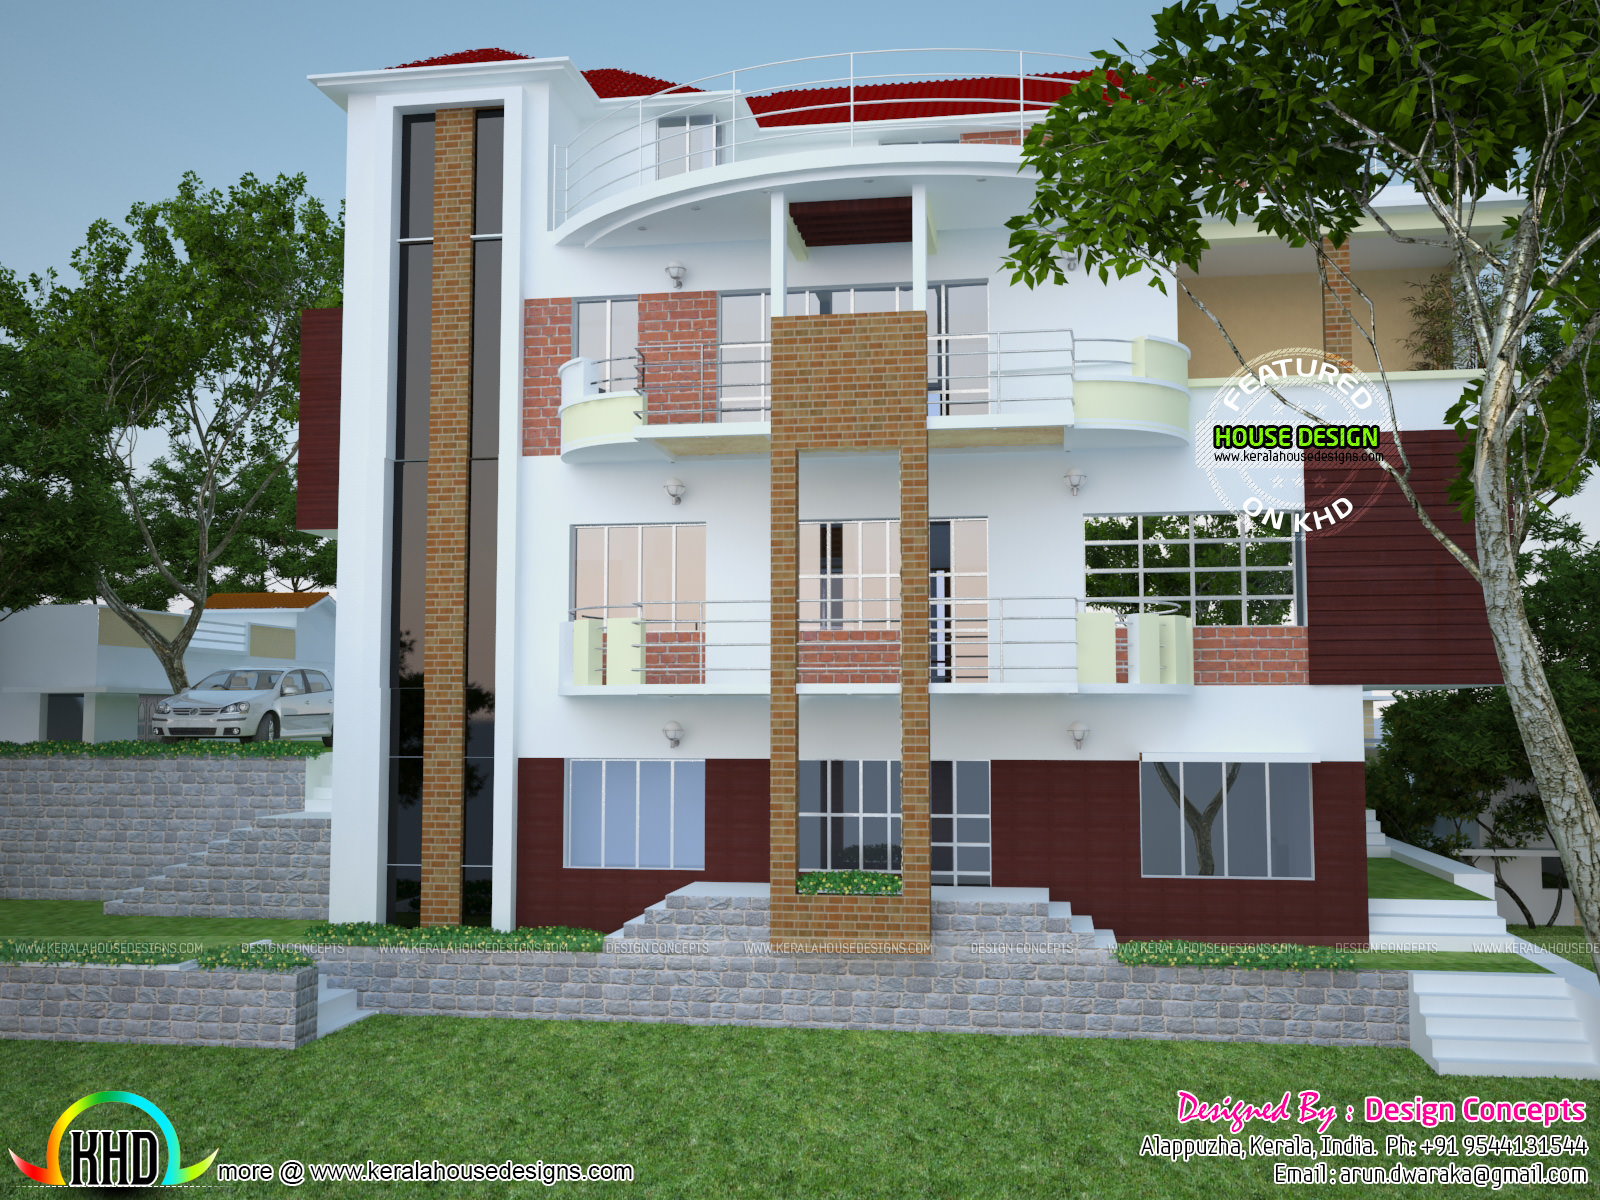 Multi family 4 plex home plan kerala home design and for House plans for family of 4